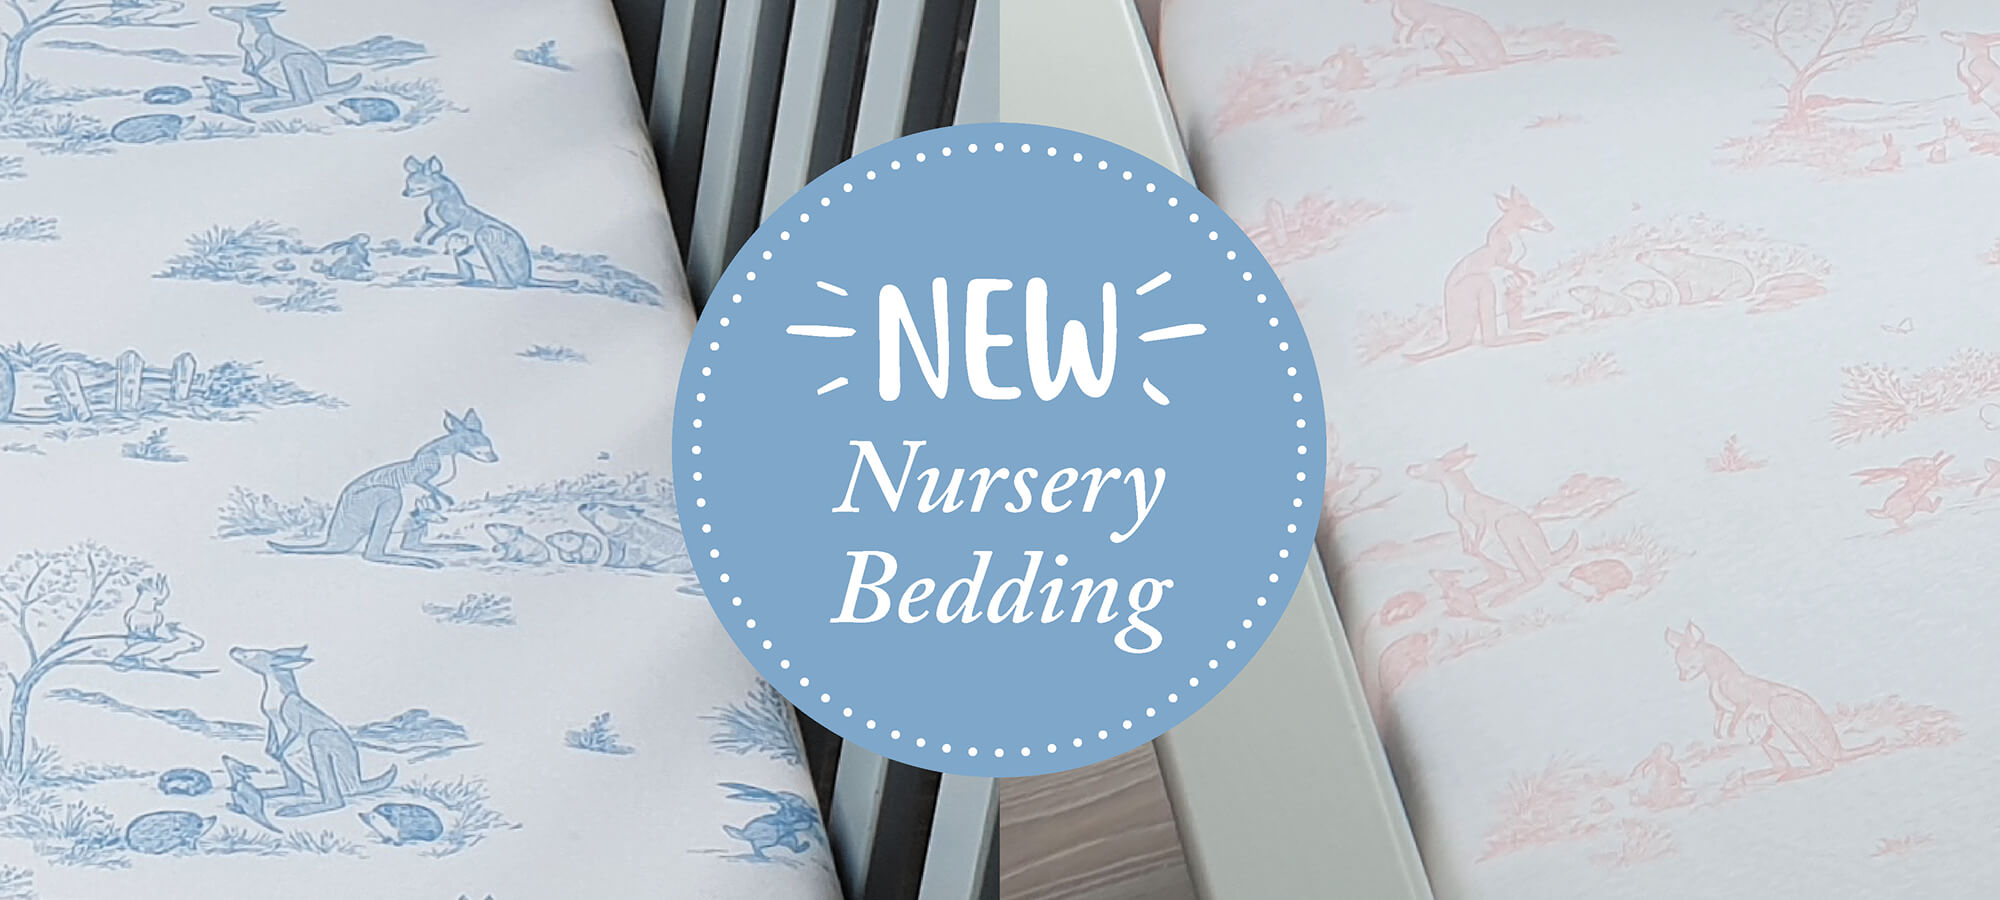 UK_Mobile_Category_Banners_2000_x_900_Bedding_June_2021__2x